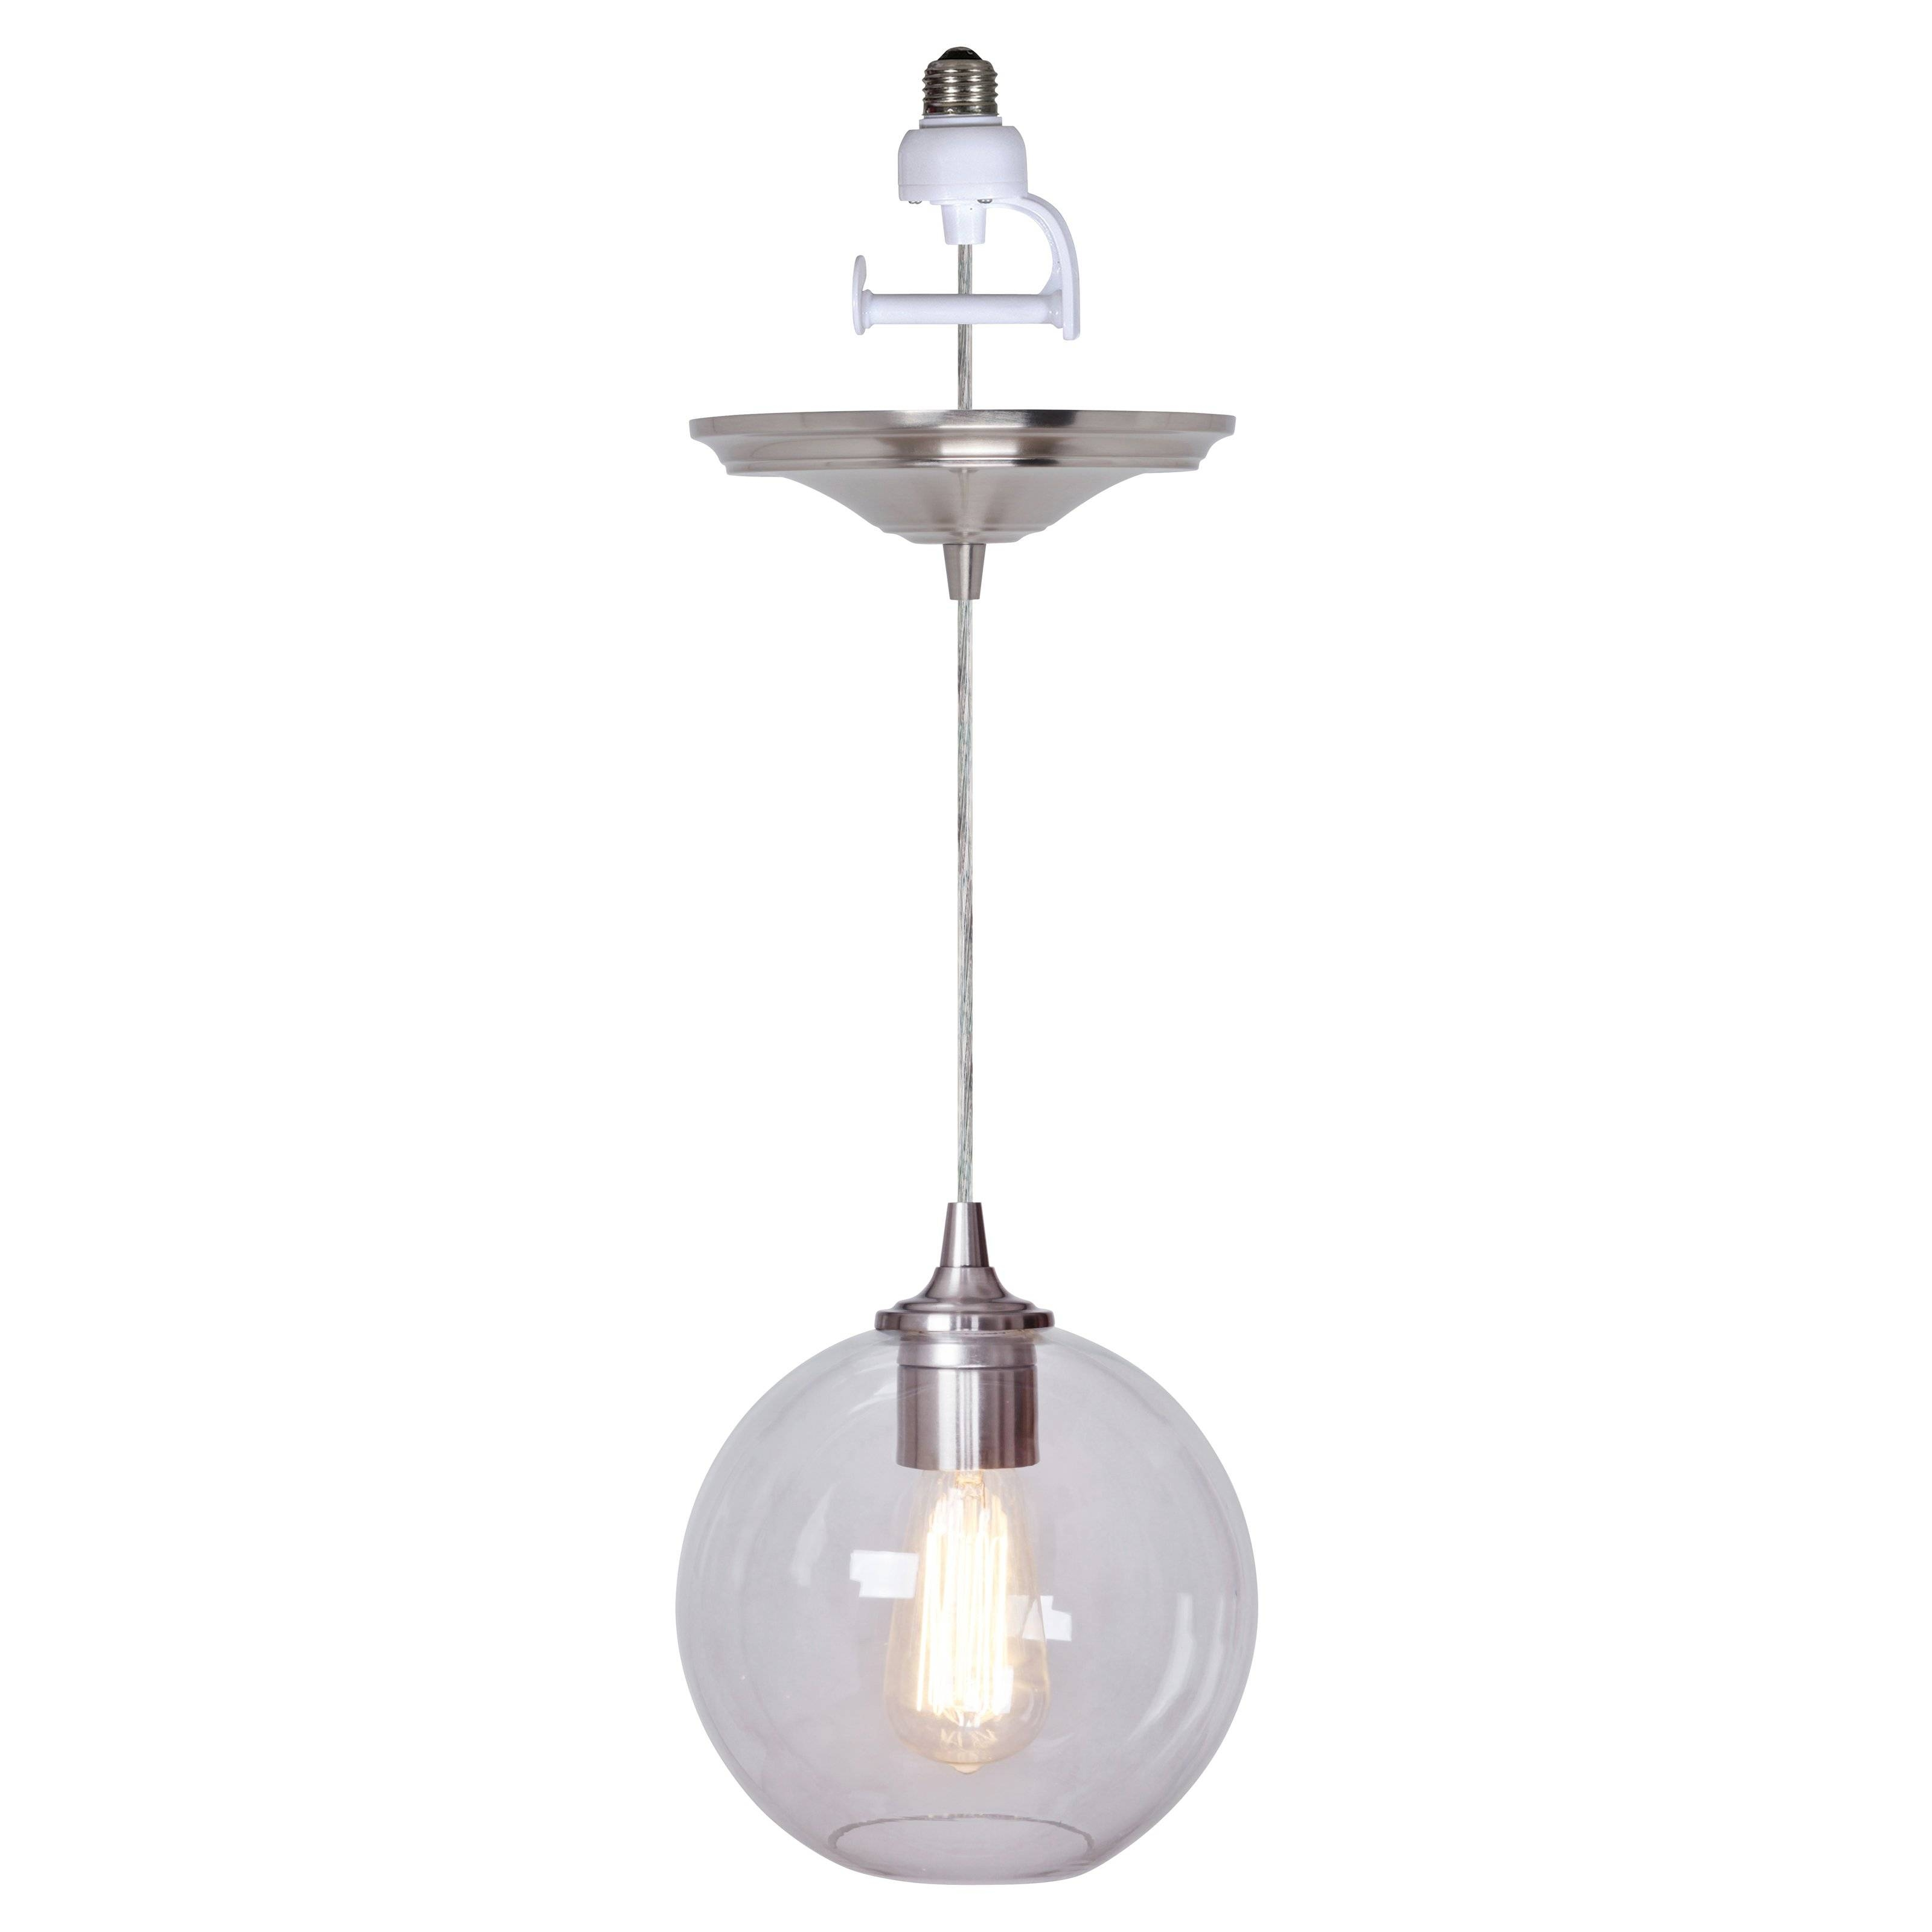 Worth Home Products Instant Screw In Pendant Light With Clear With Screw In Pendant Lights Fixtures (View 15 of 15)